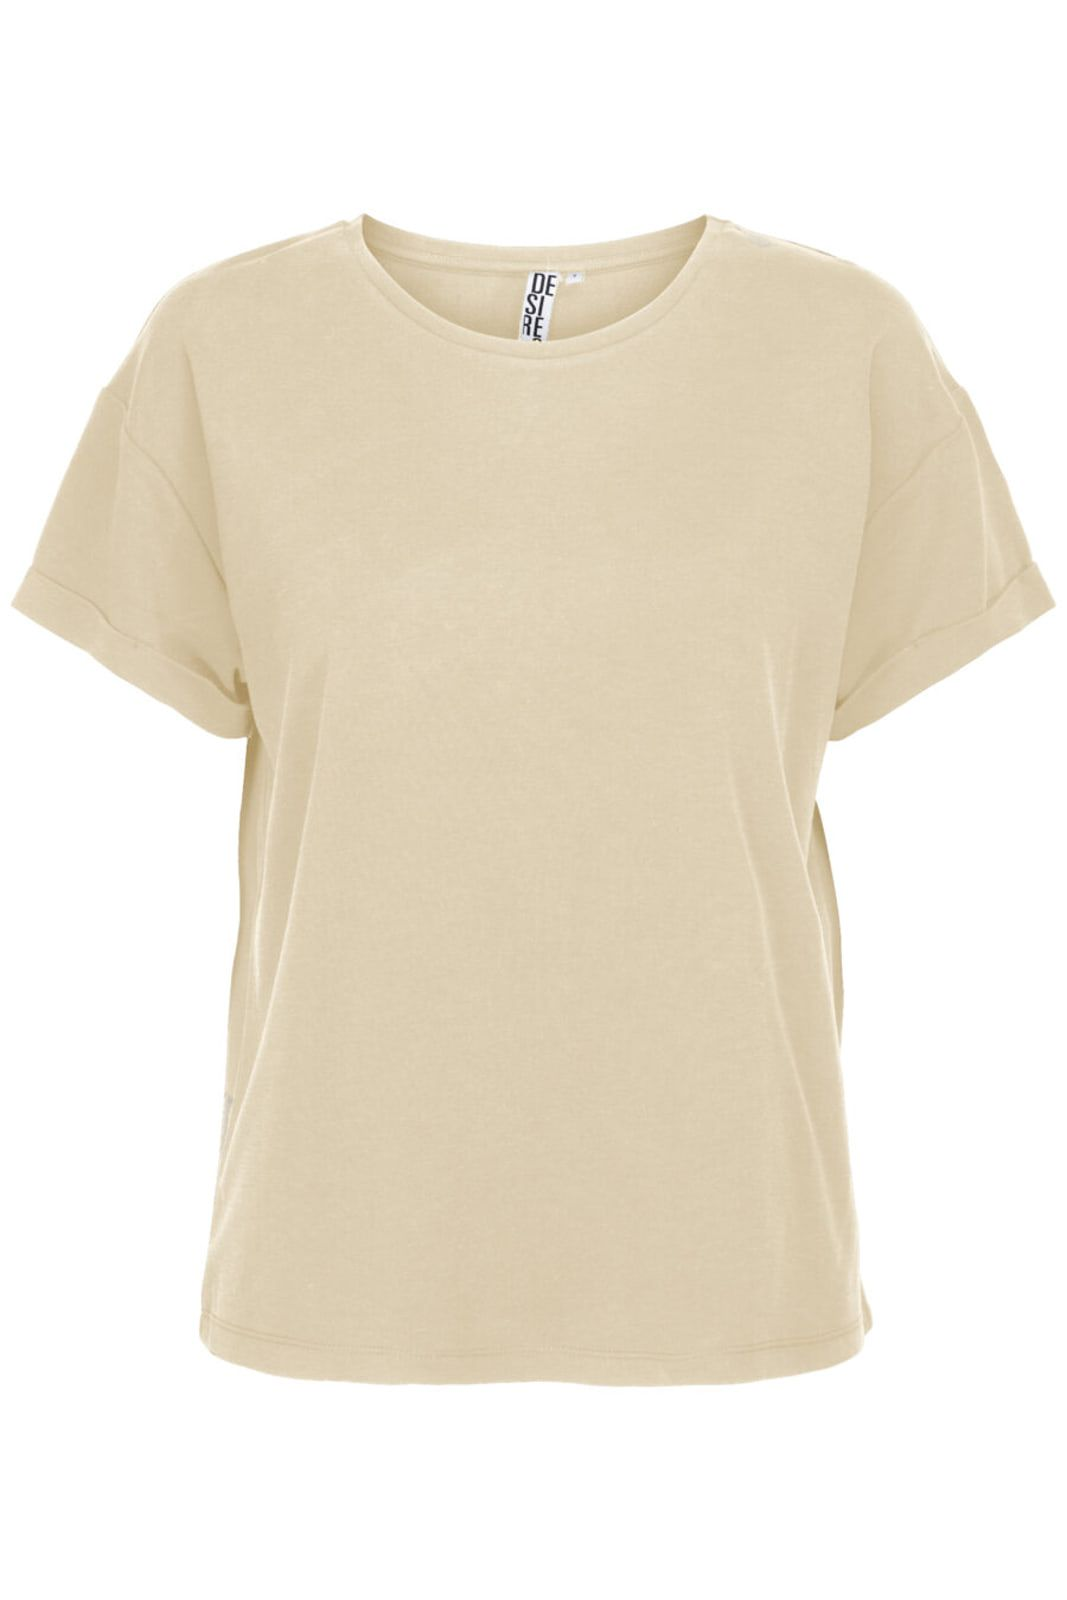 The Bini Tee is a must have. We all need a basic t-shirt in our wardrobe. The Bini Tee is a great choice. It has short sleeves, a round neckline and is super comfortable. Quality: 70% Modal, 30% Polyester Alabama Shop